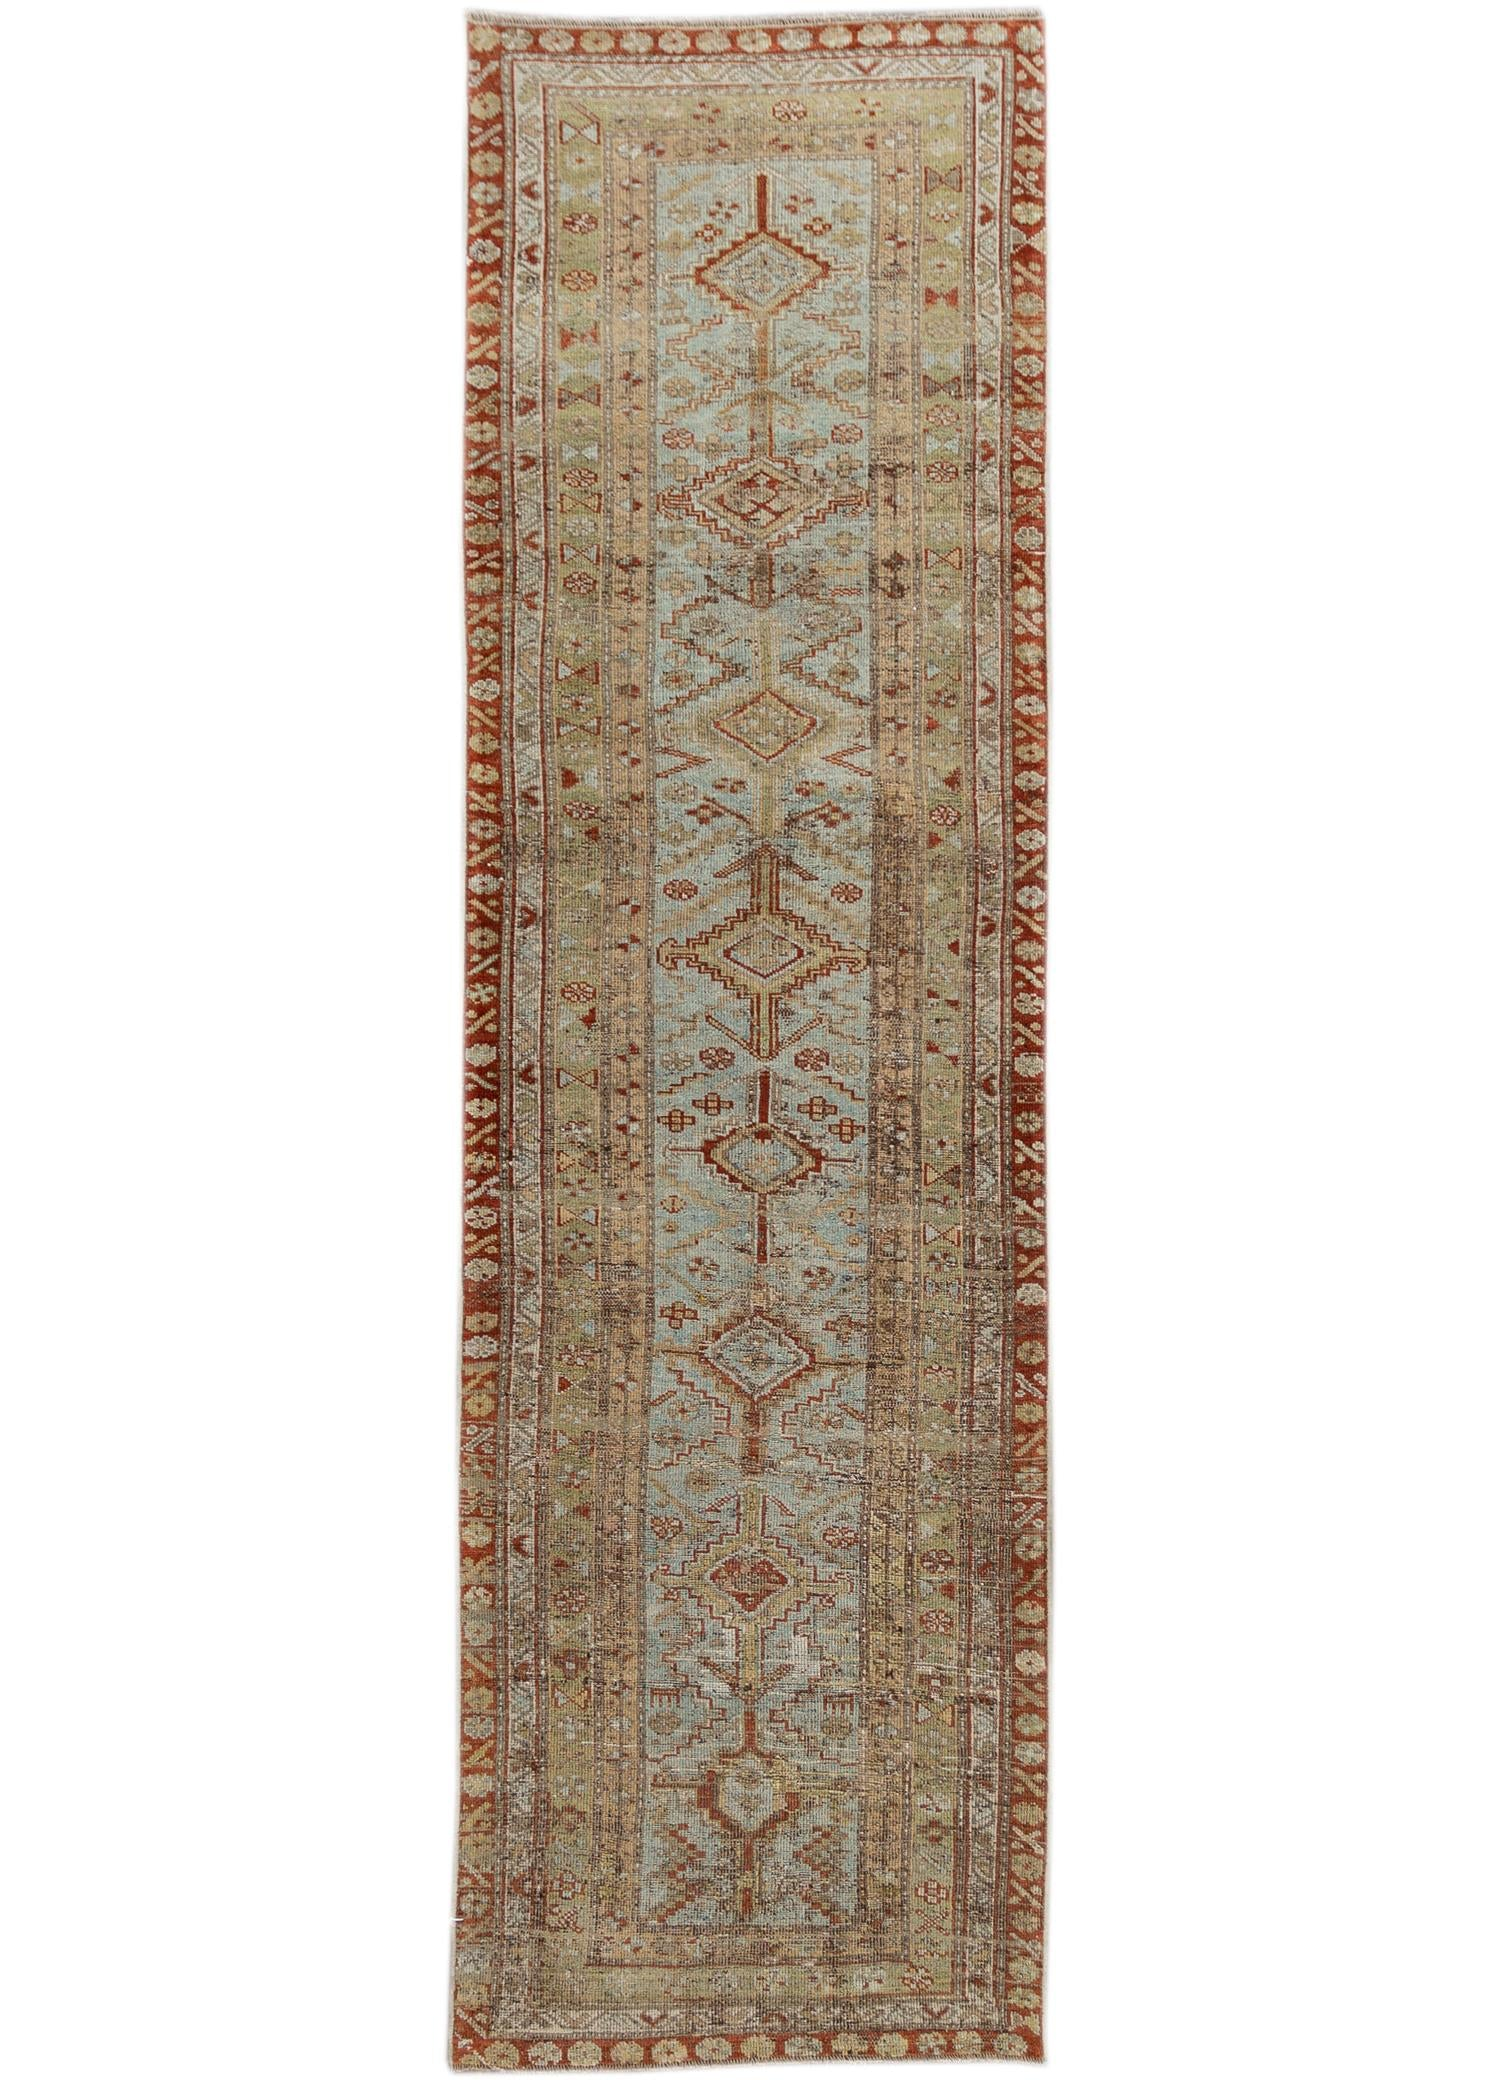 Antique Blue & Rust Persian Malayer Wool Runner Rug, 3x12